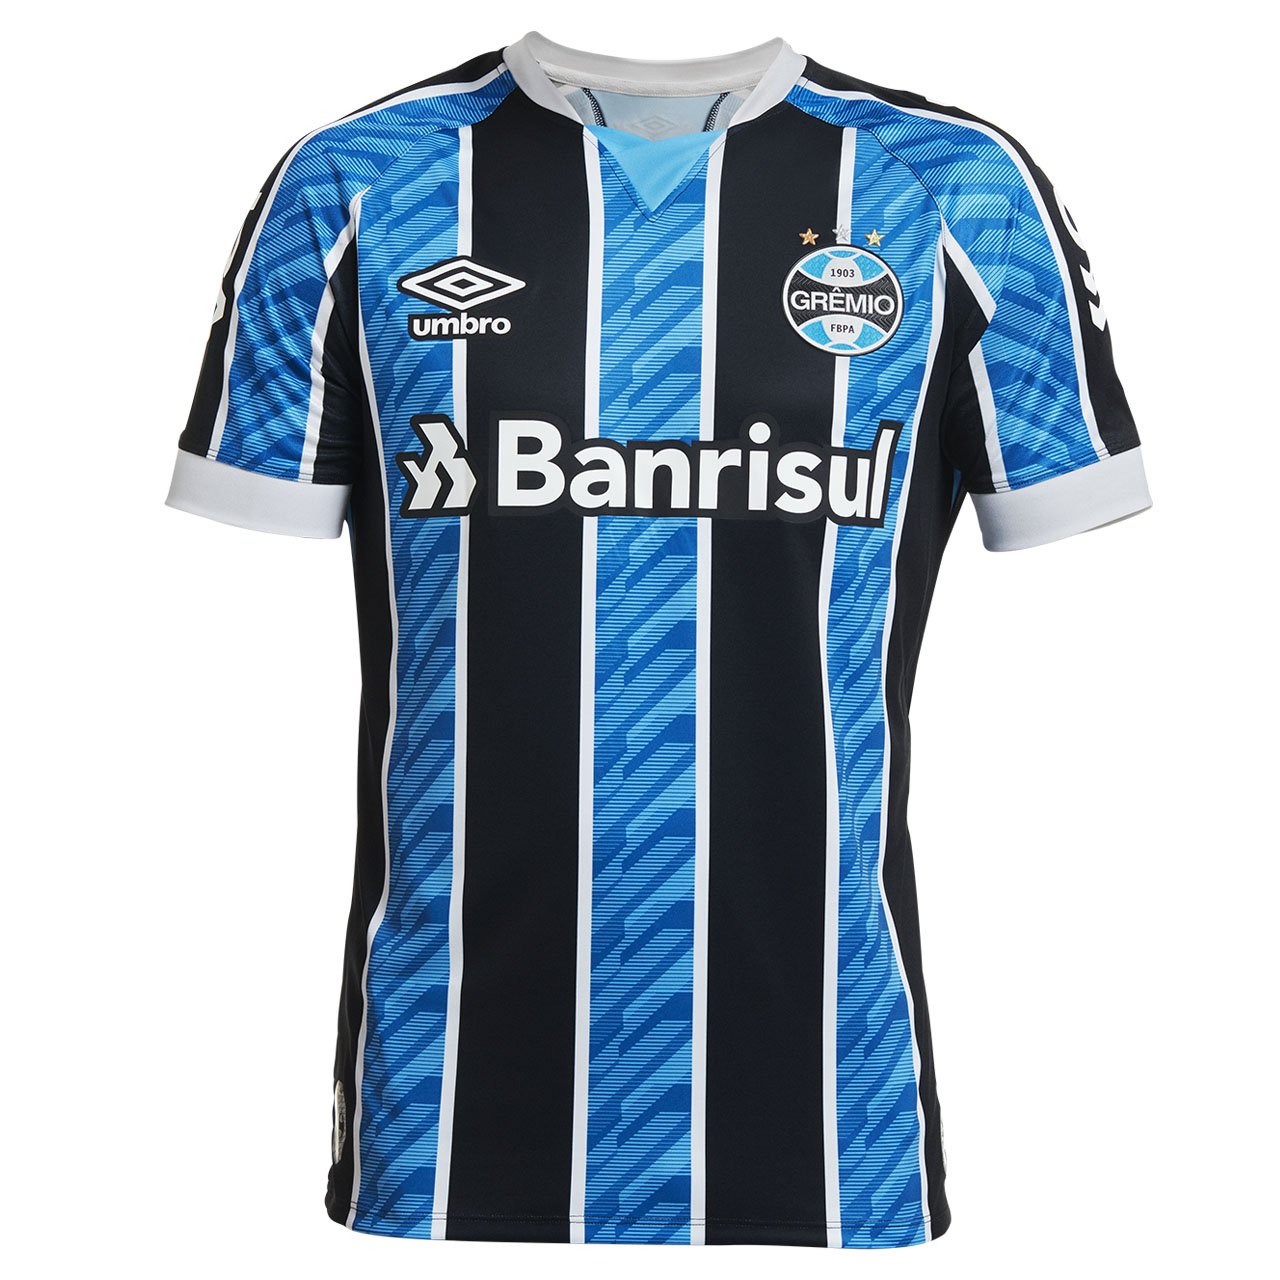 https://assets-mantosdofutebol.sfo2.digitaloceanspaces.com/wp-content/uploads/2020/03/Camisas-do-Gr%C3%AAmio-2020-2021-Umbro-kit-2.jpg